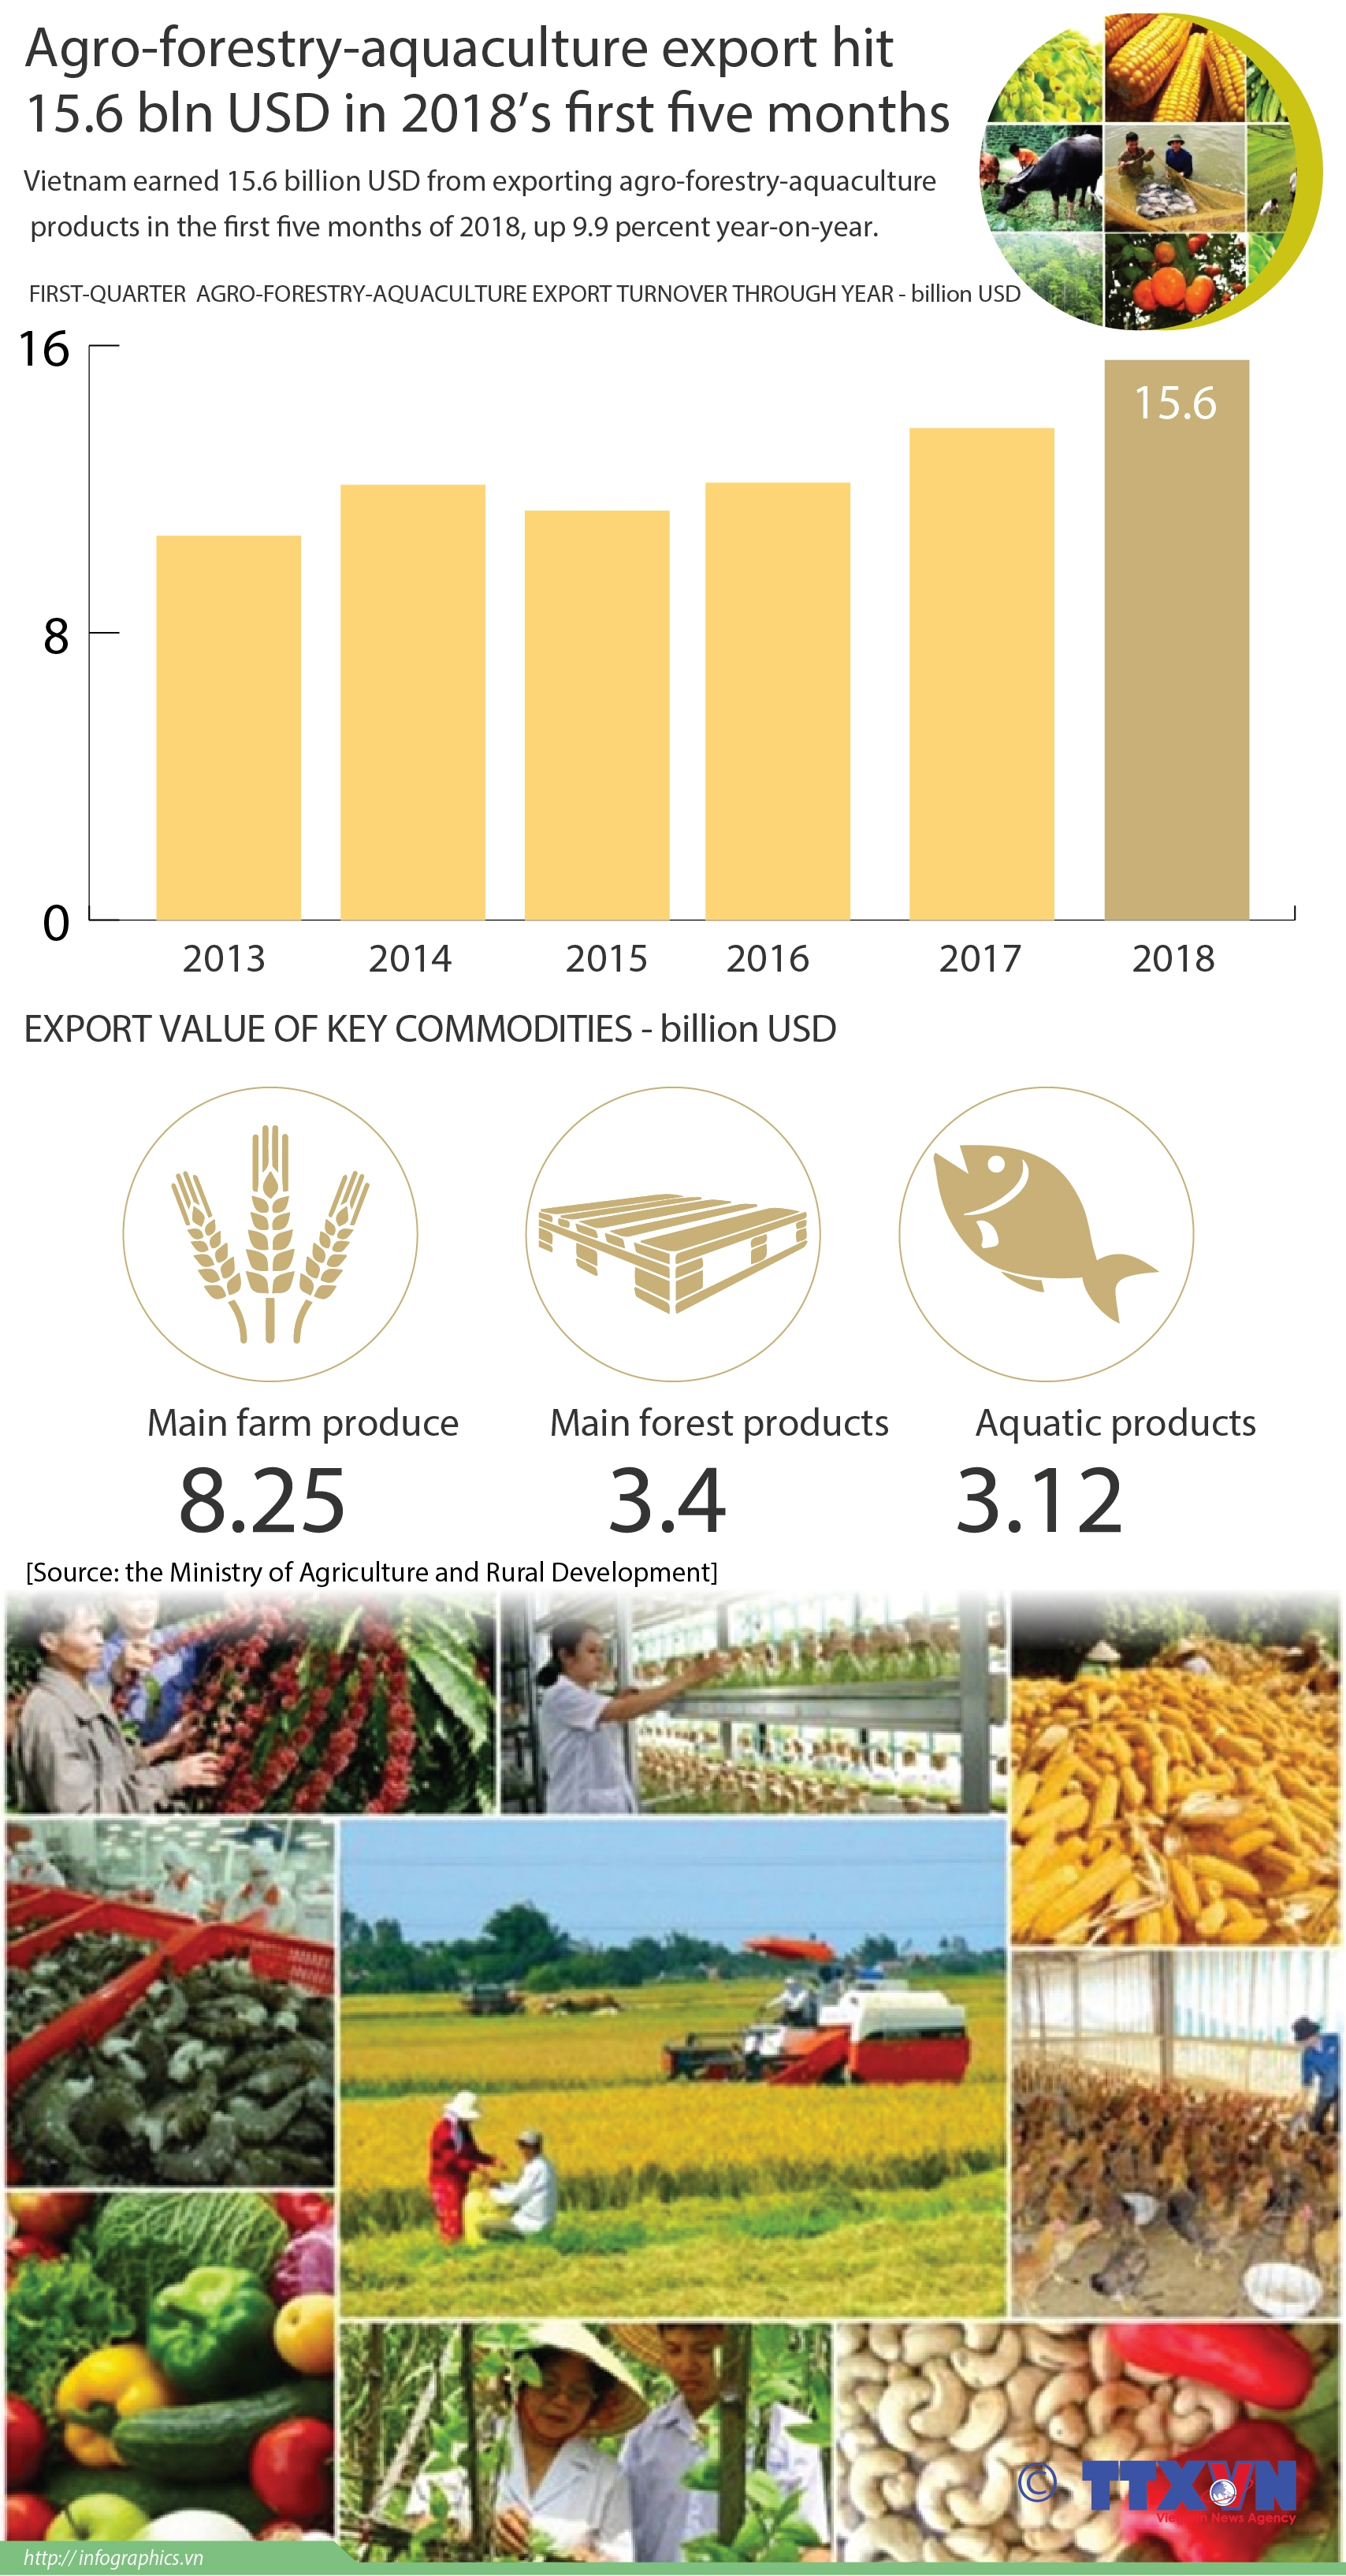 agro forestry aquaculture export hit 156 bln in five months